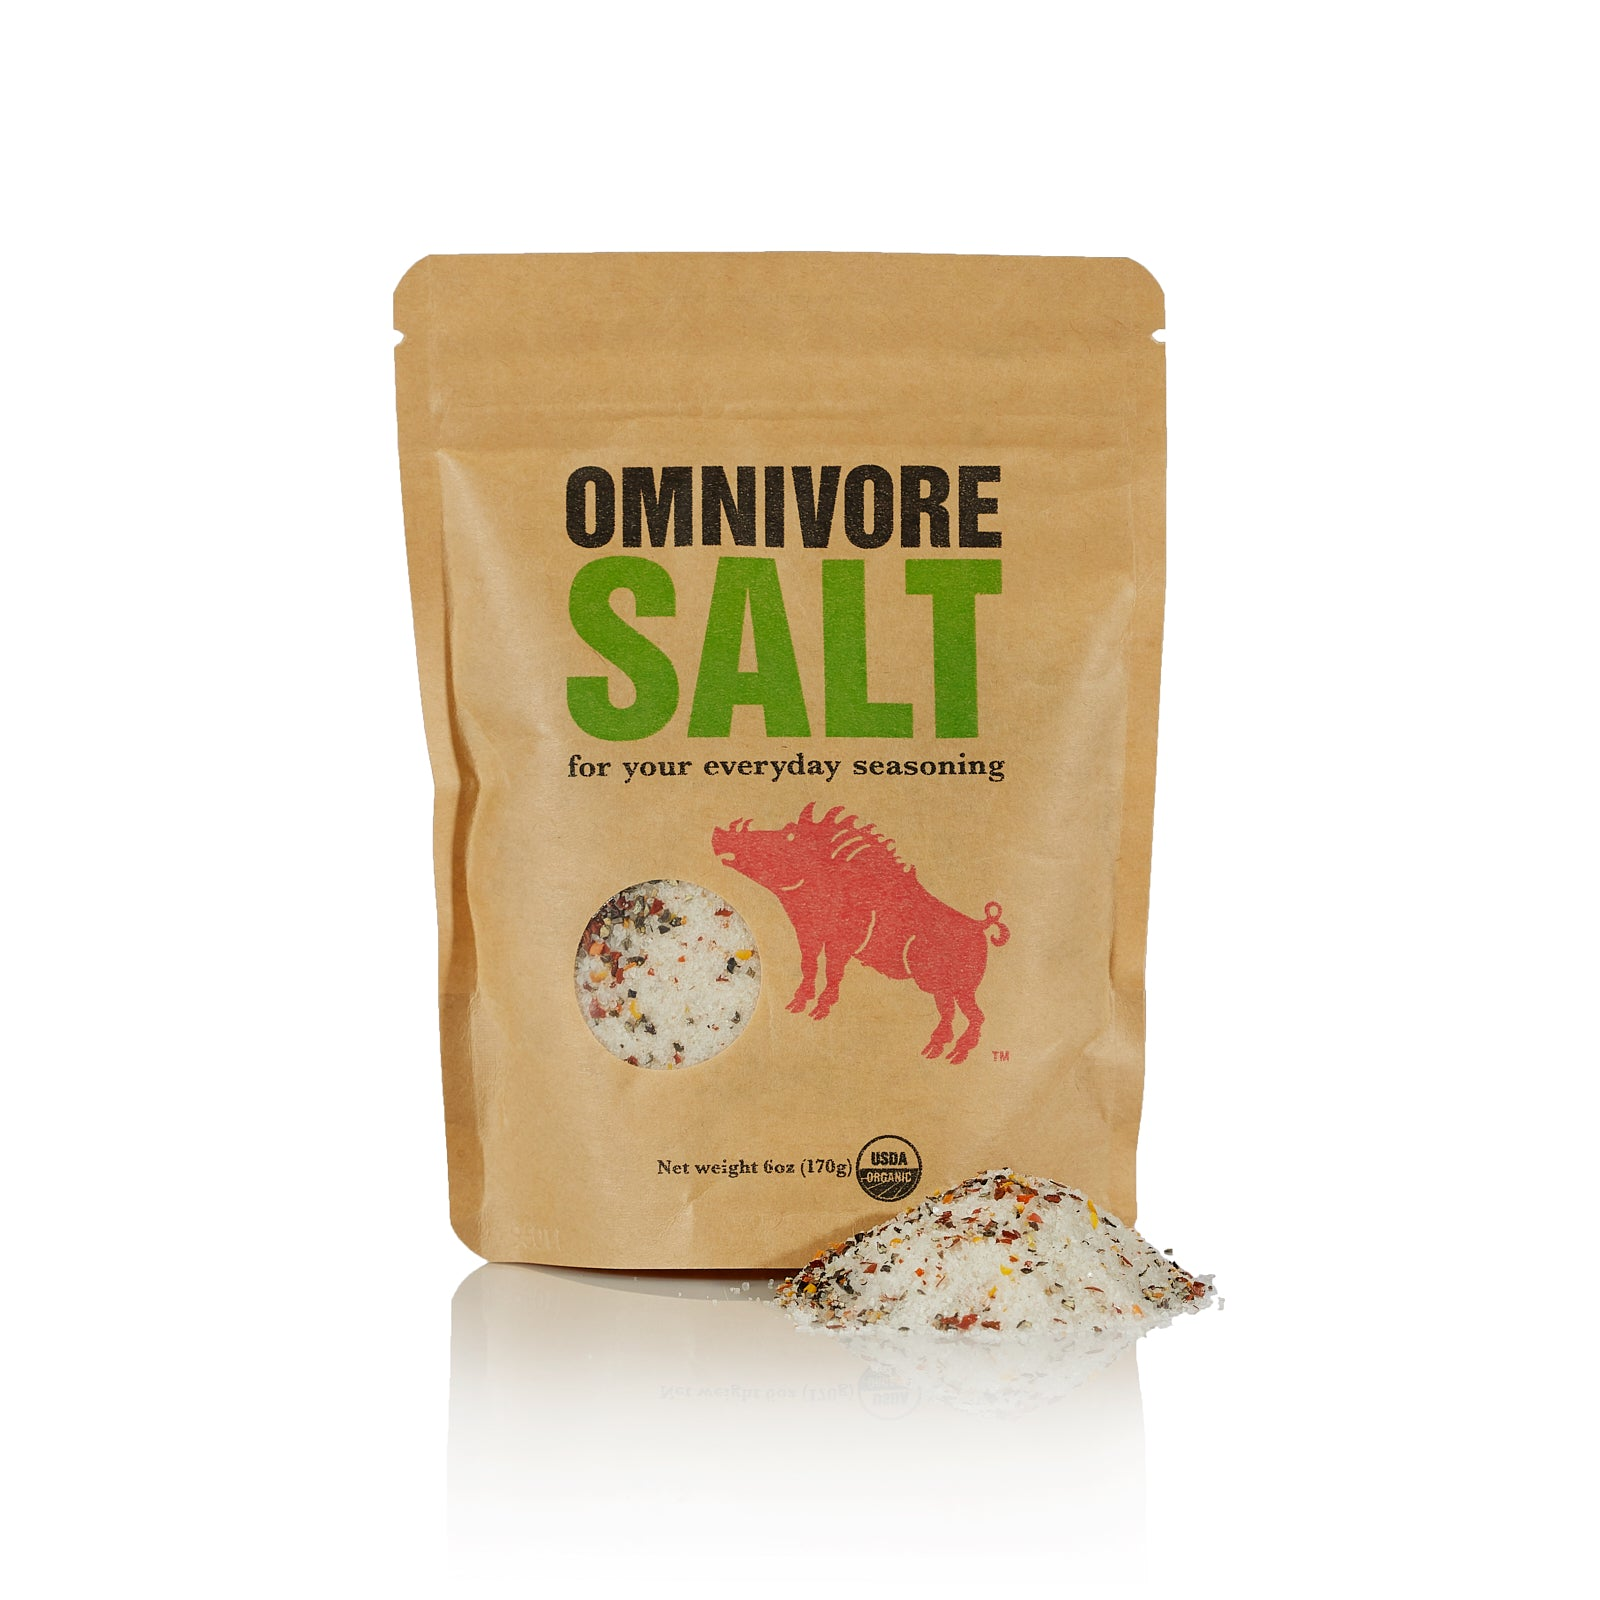 Omnivore Salt by Angelo Garro